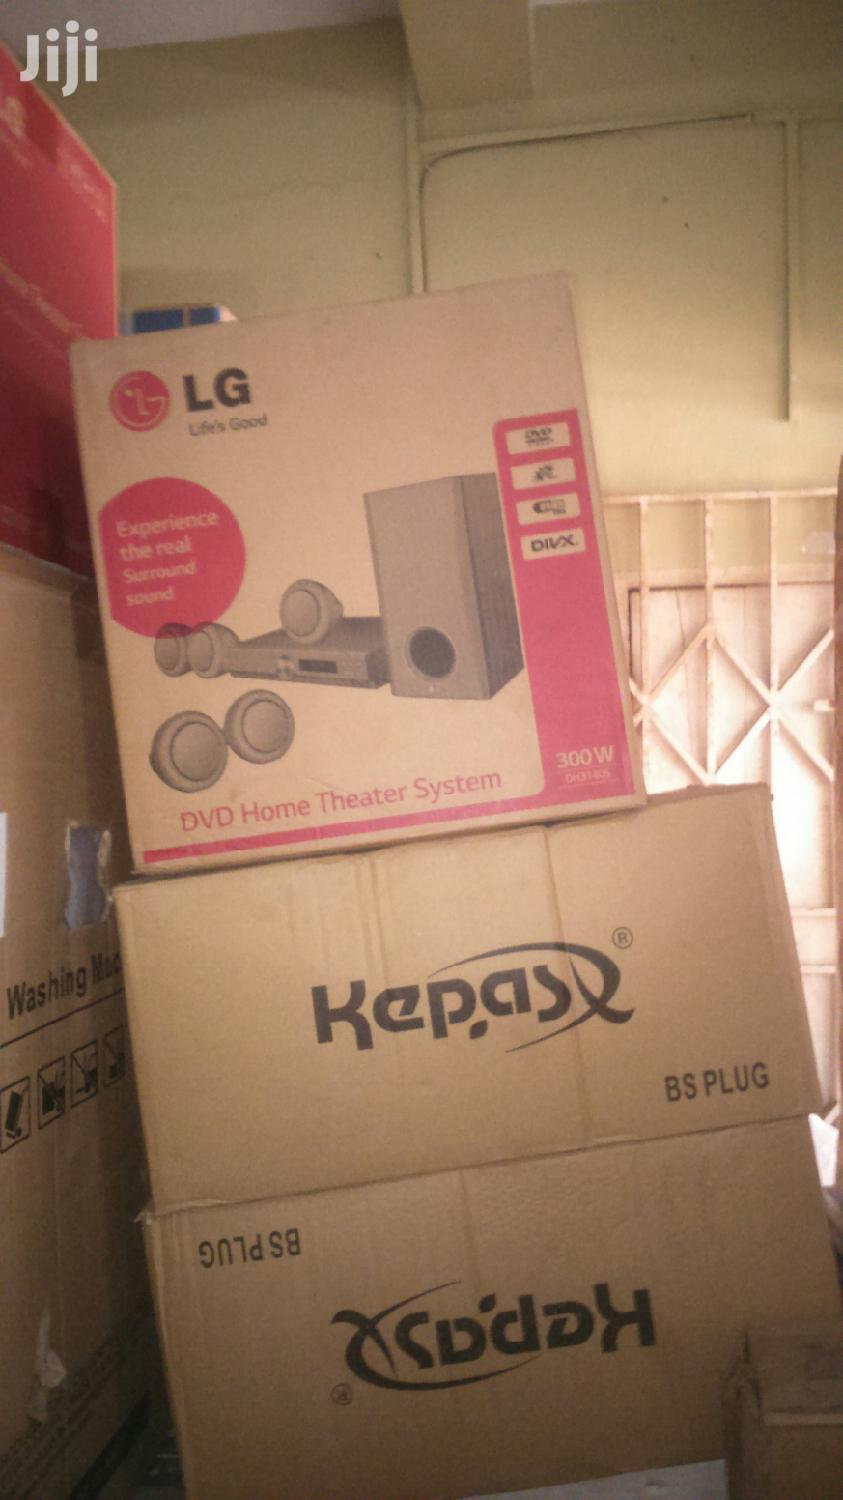 Archive: A Brand New LG DH3140S 300W DVD Home Theater System